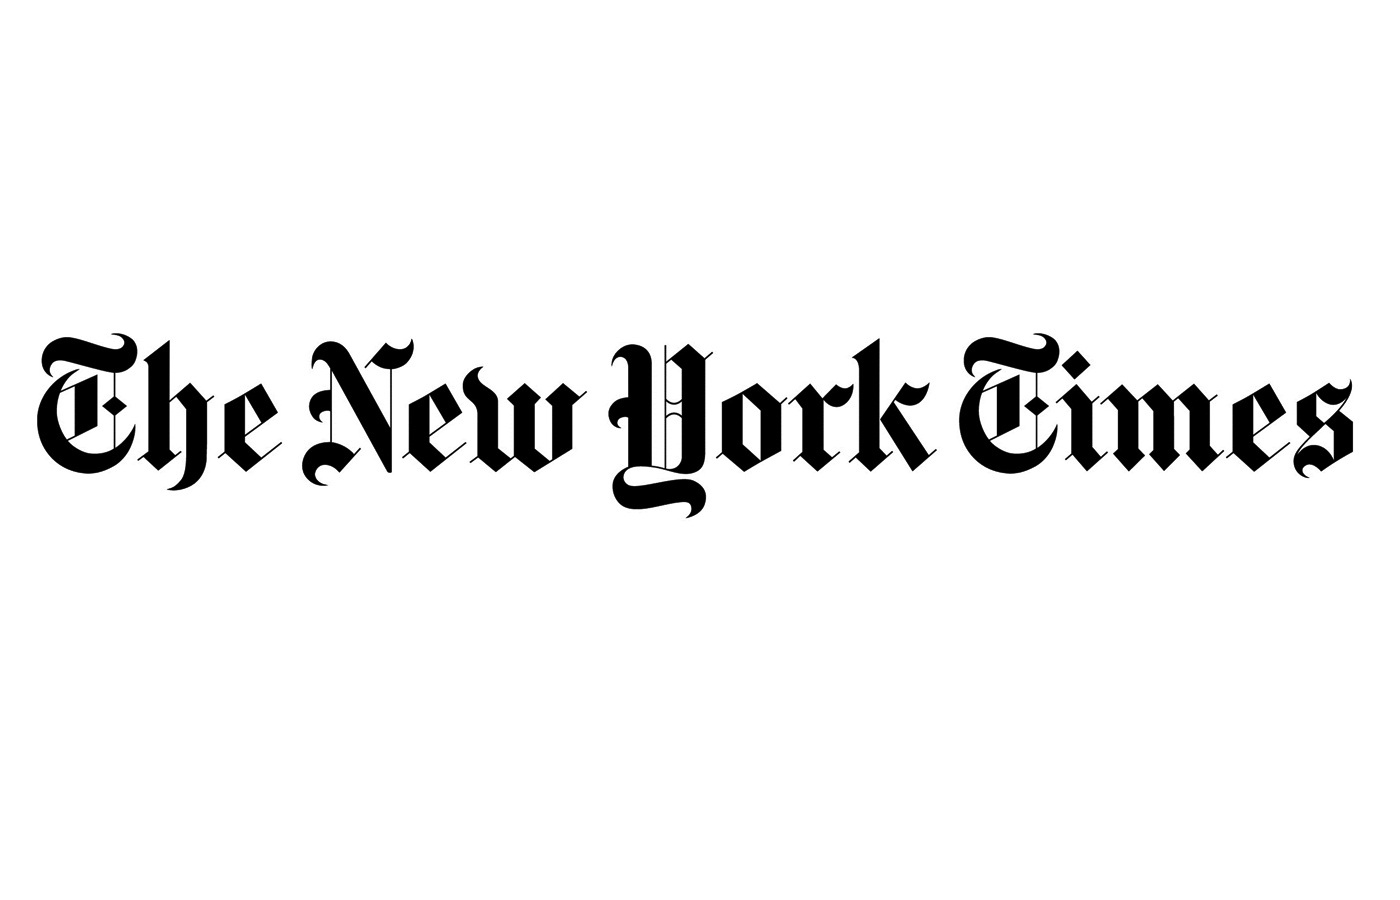 new-york-times-logo-8